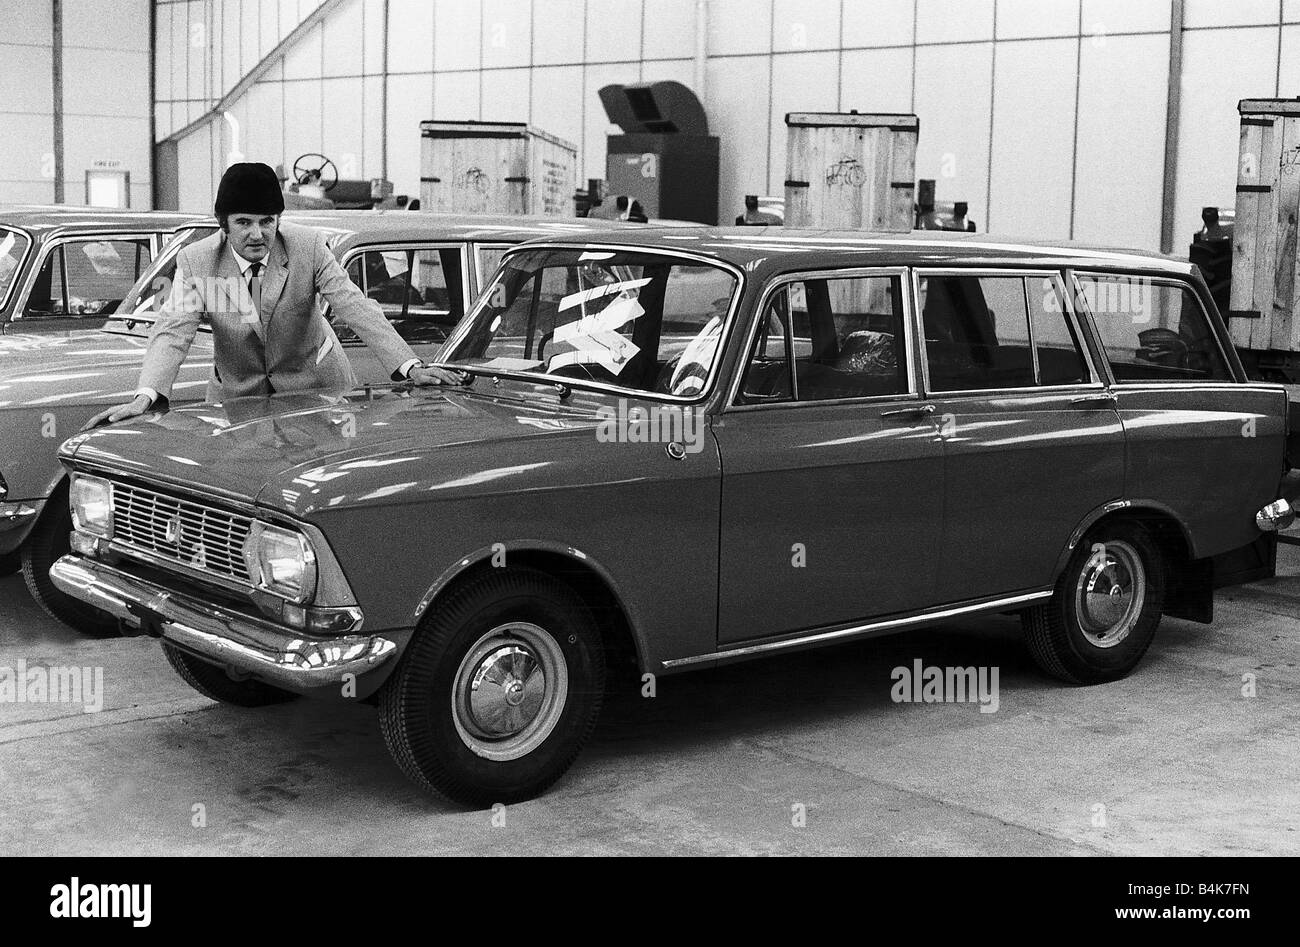 Motors Cars For Sale Property Jobs: Motor Cars The Russian Moskvich 427 Estate Which Is